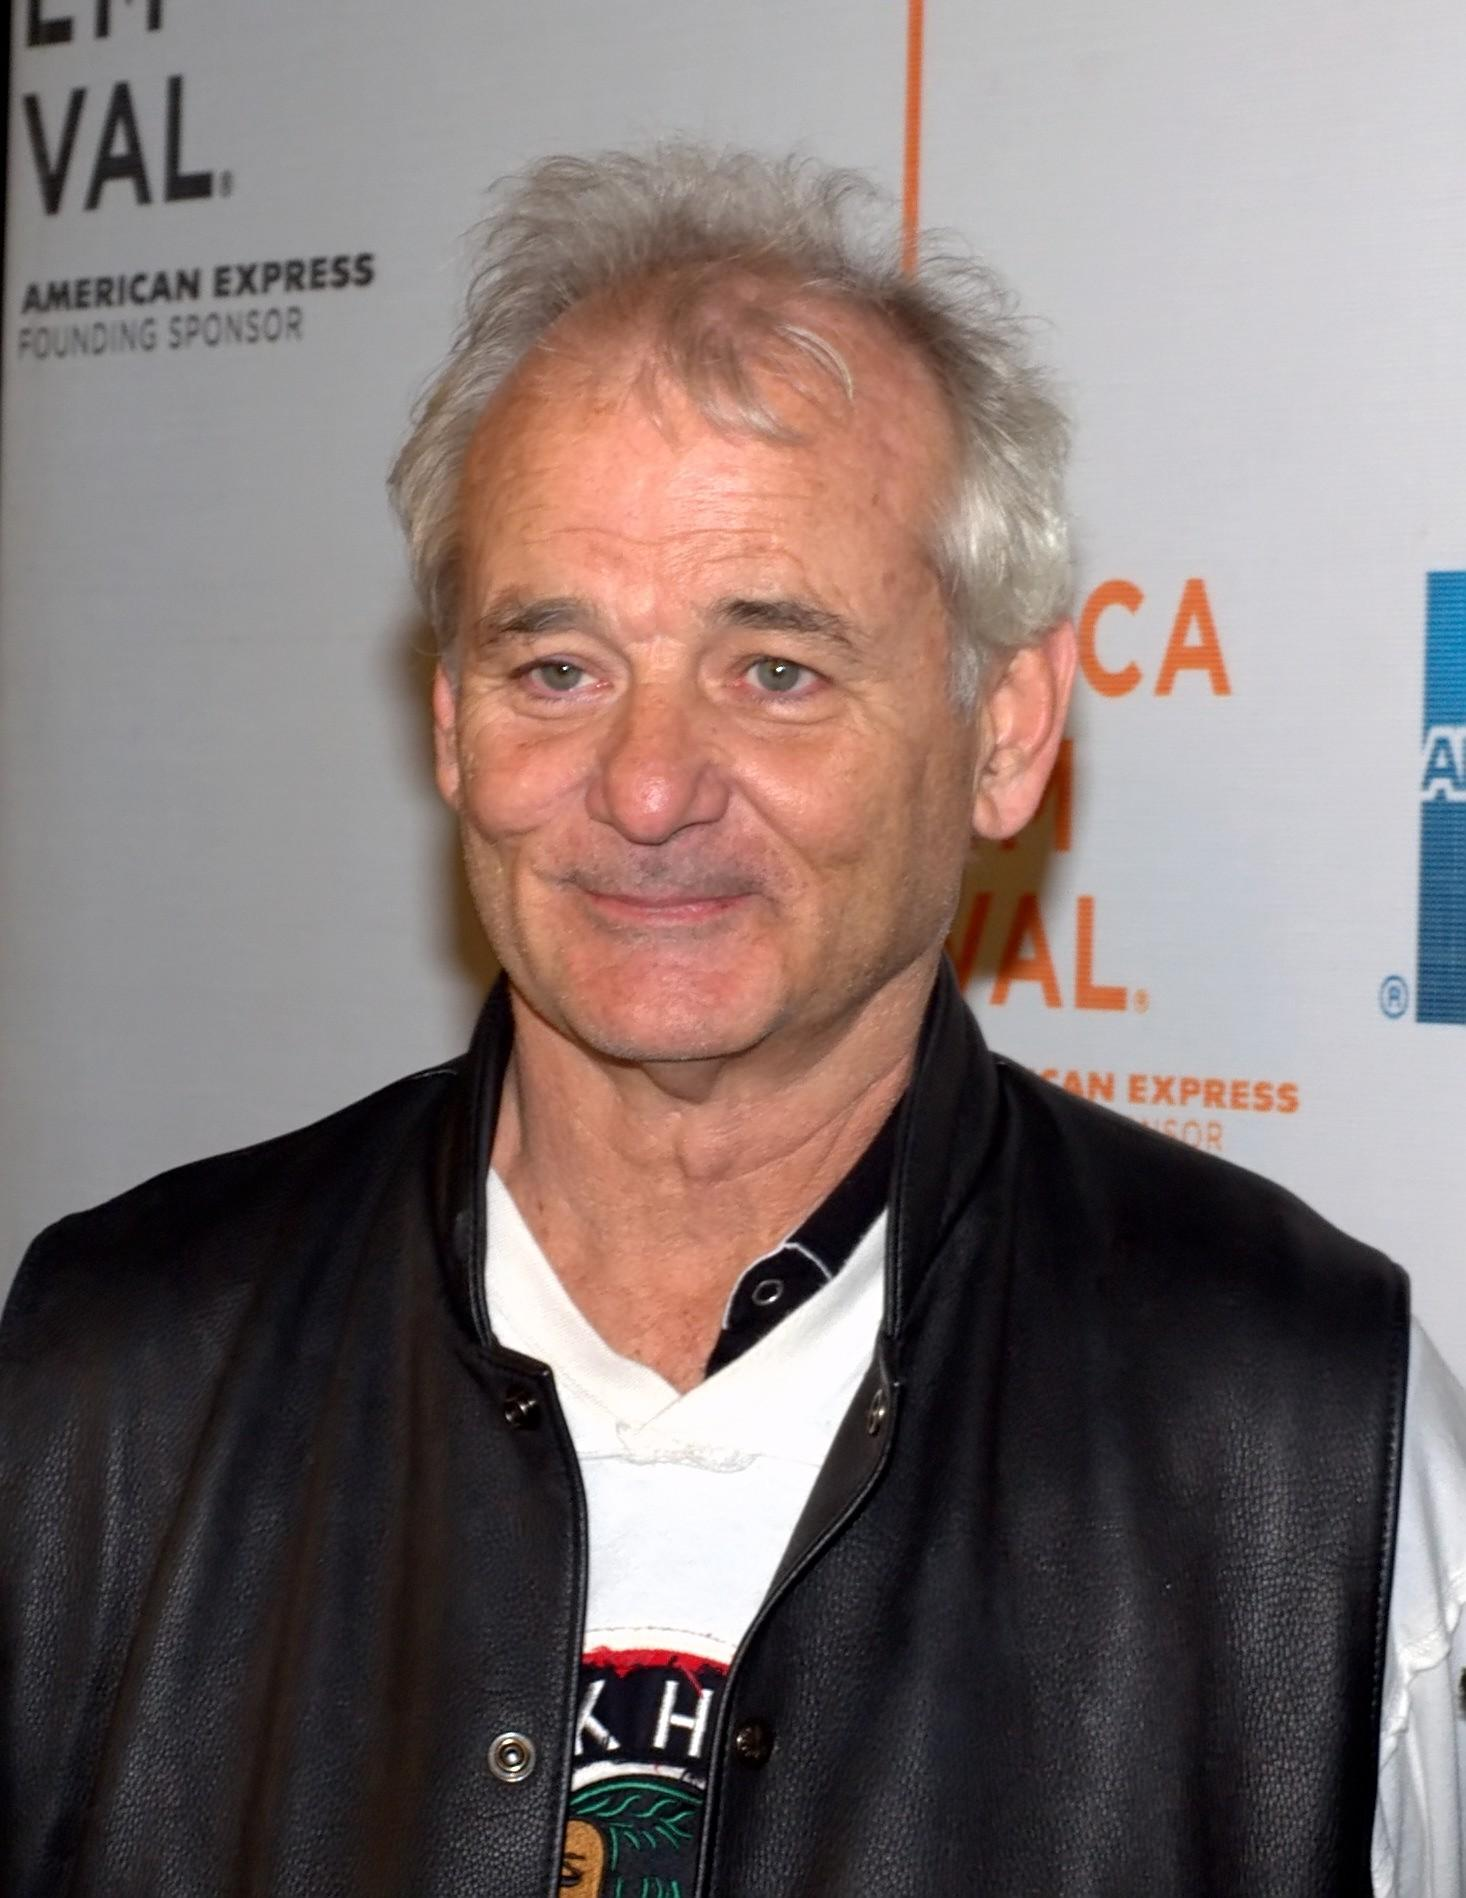 Actor/comedian Bill Murray was recognized for his comedic work.